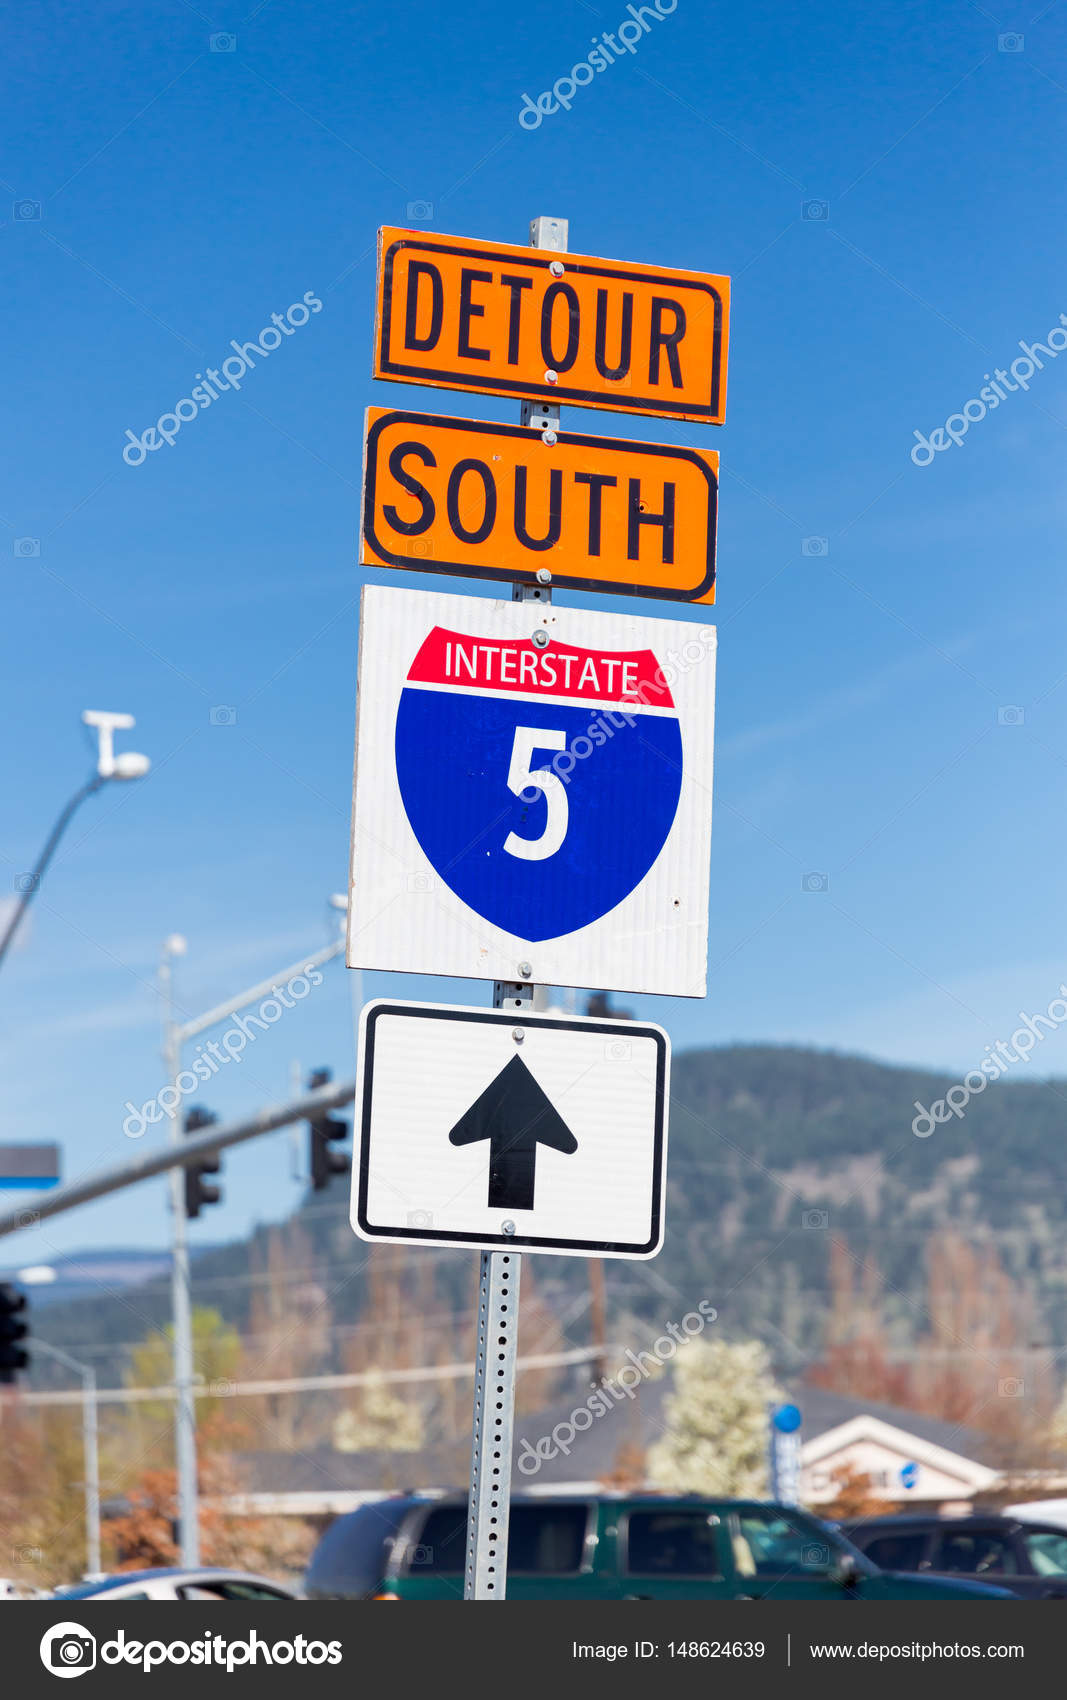 Interstate 5 South Detour Sign – Stock Editorial Photo